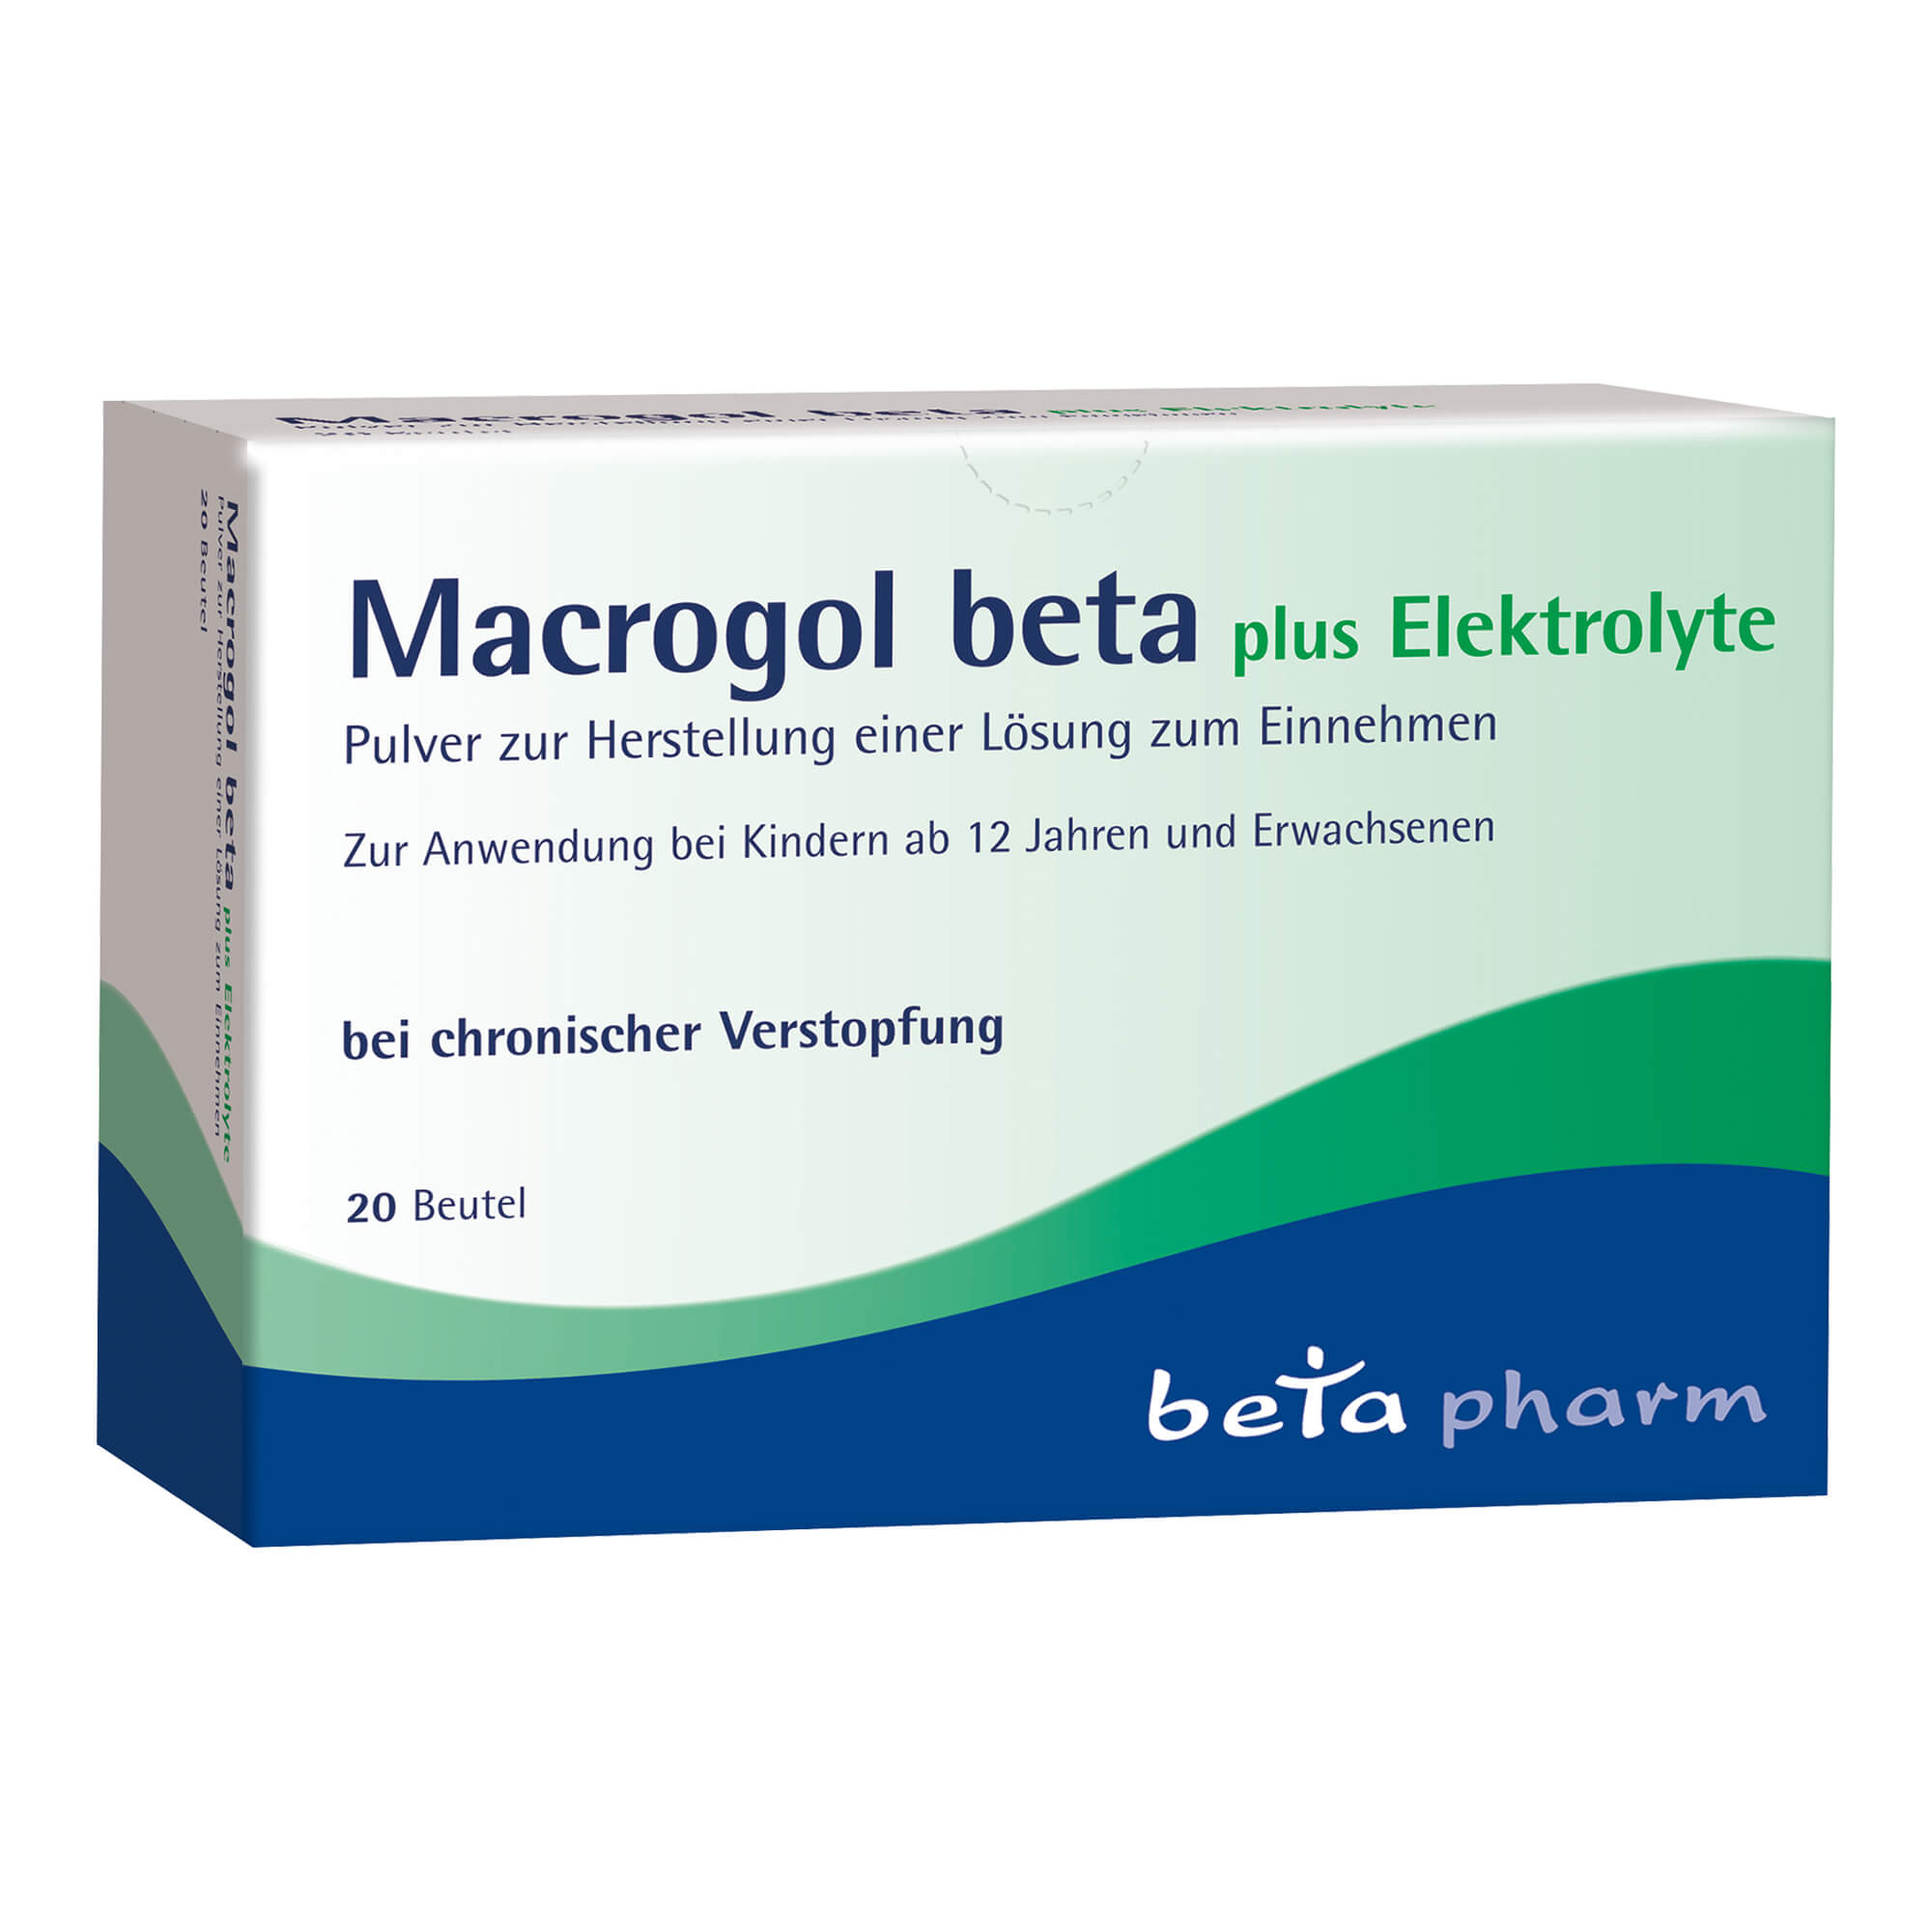 Macrogol beta plus Elektrolyte